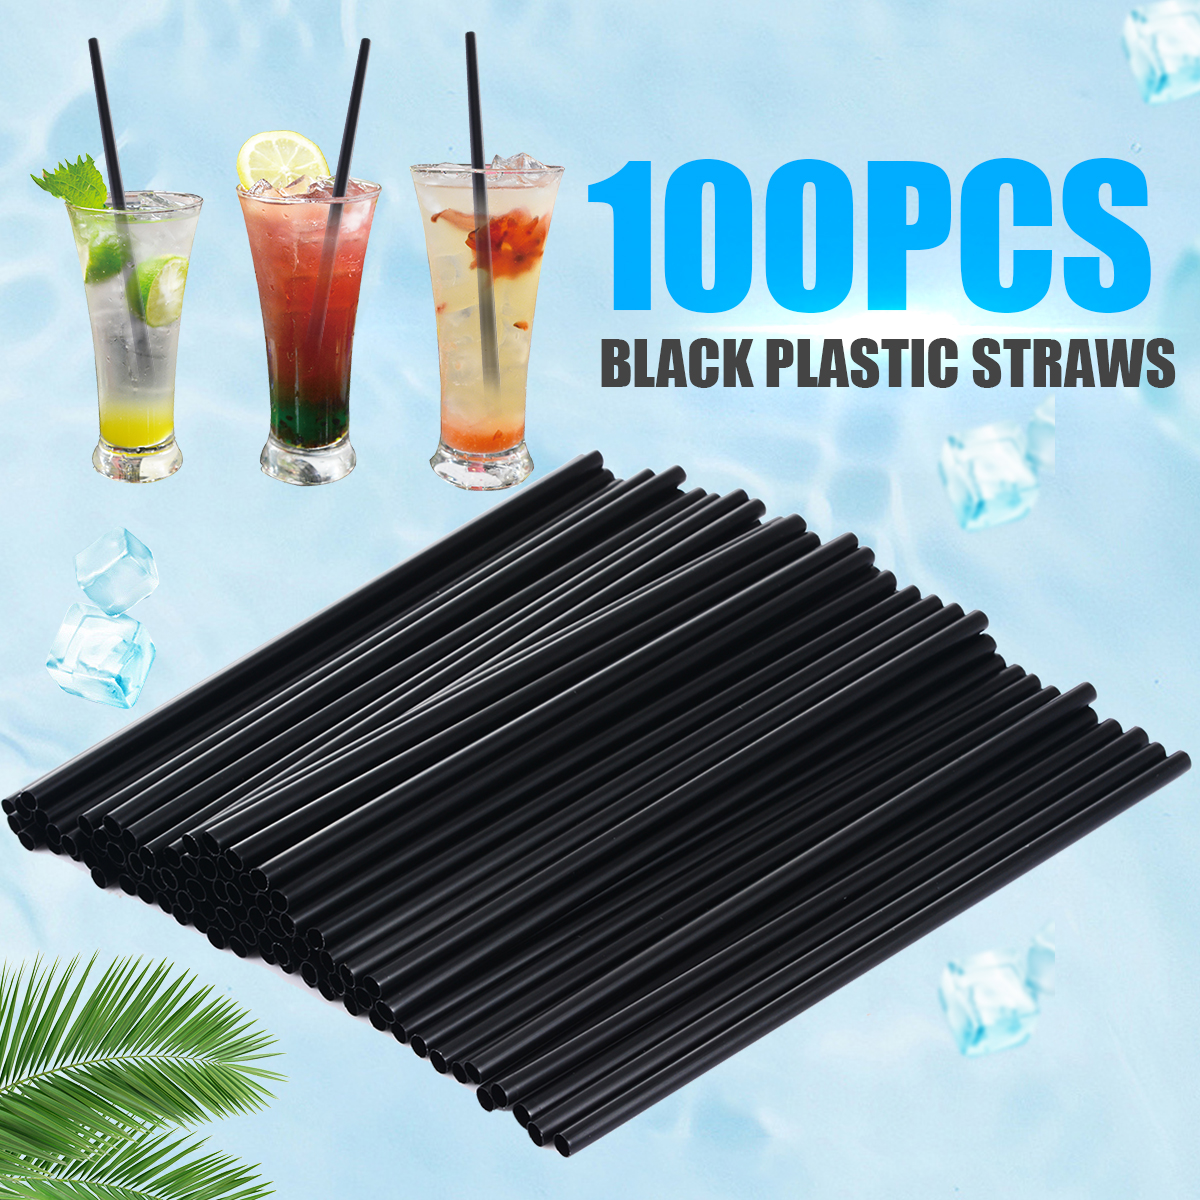 Mayitr 100Pcs lot Plastic Mini Cocktail Straws DIY Party Straw 3mm Drinking Straw For Celebration Drink Decor Drink Tools in Drinking Straws from Home Garden